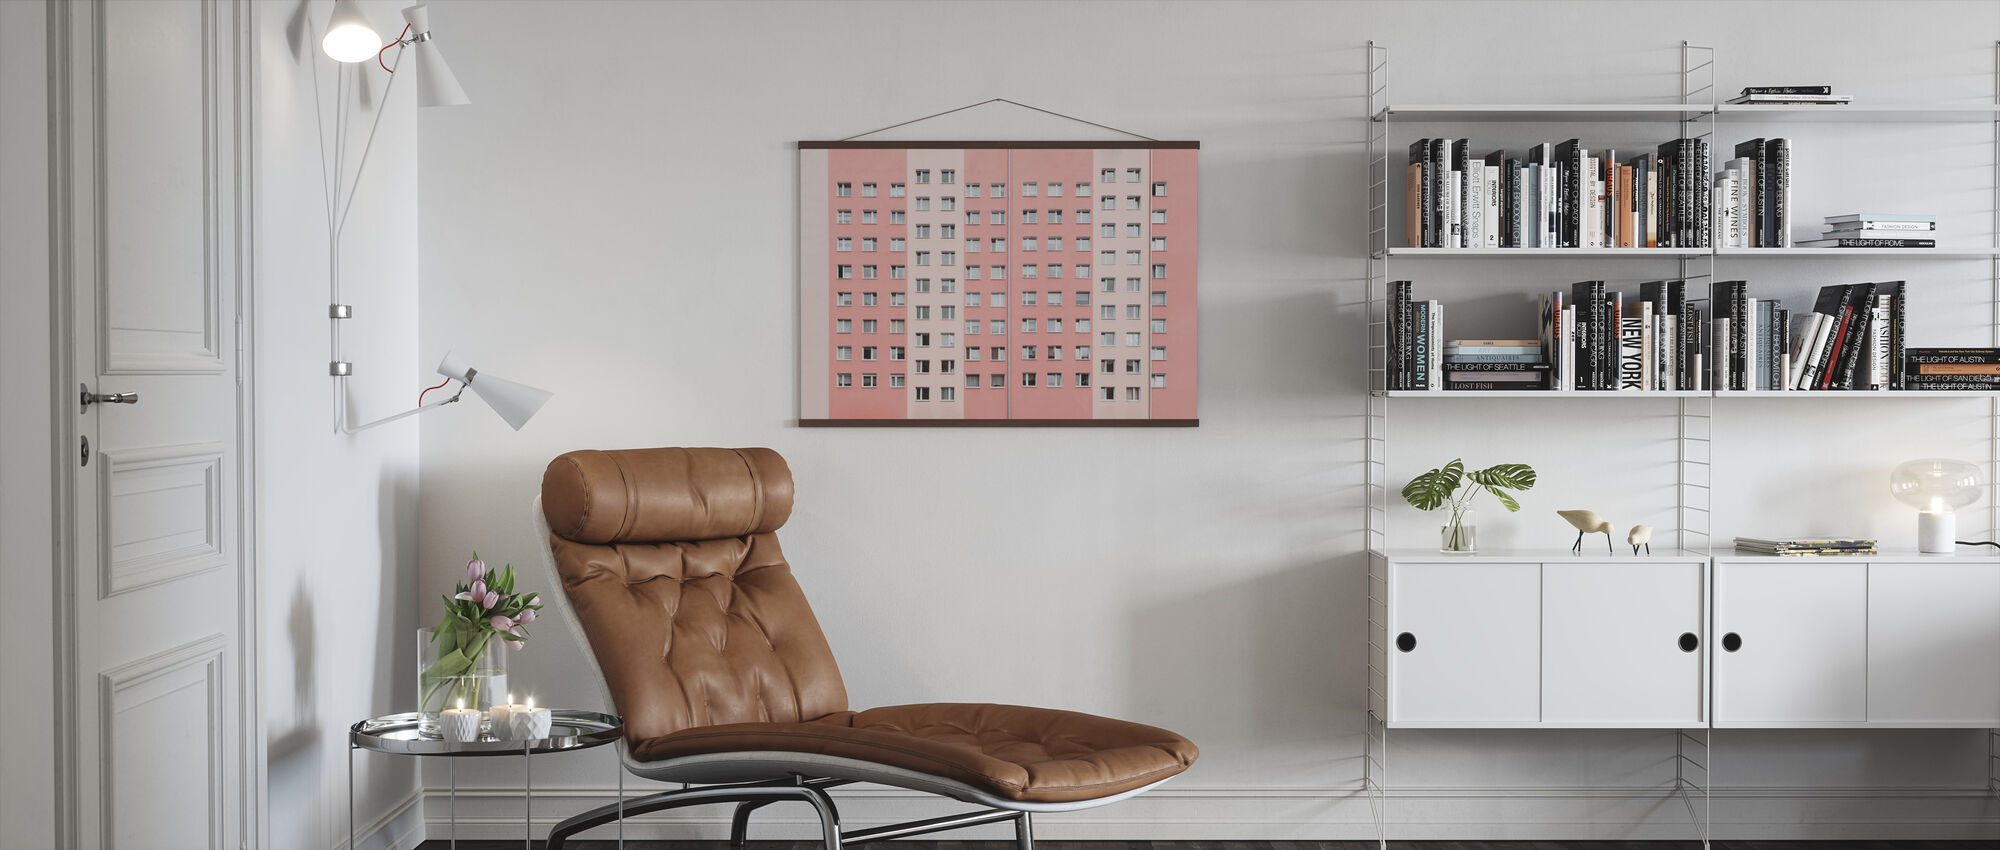 Windows - Poster - Living Room